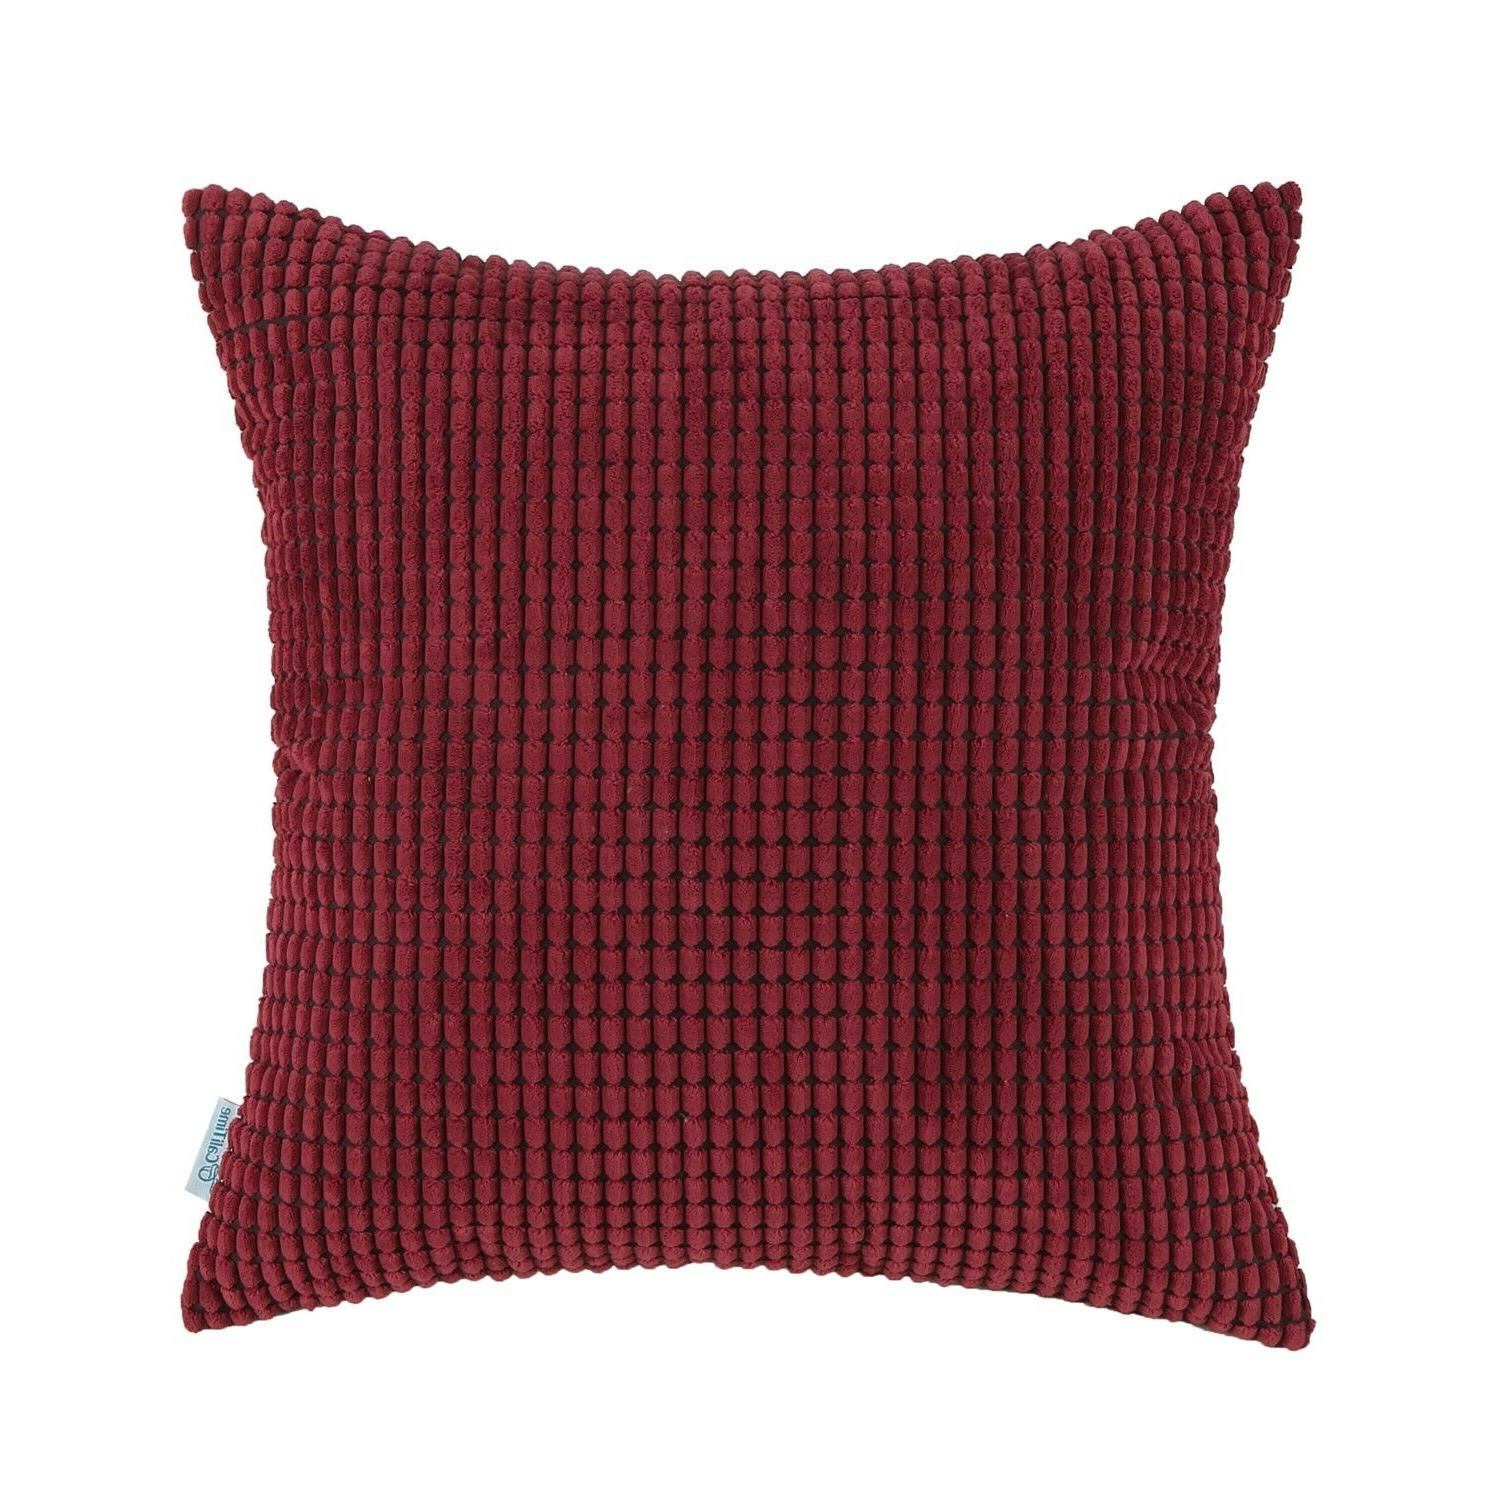 CaliTime Pillow Shells Cushion Covers Solid Soft Corduroy Co